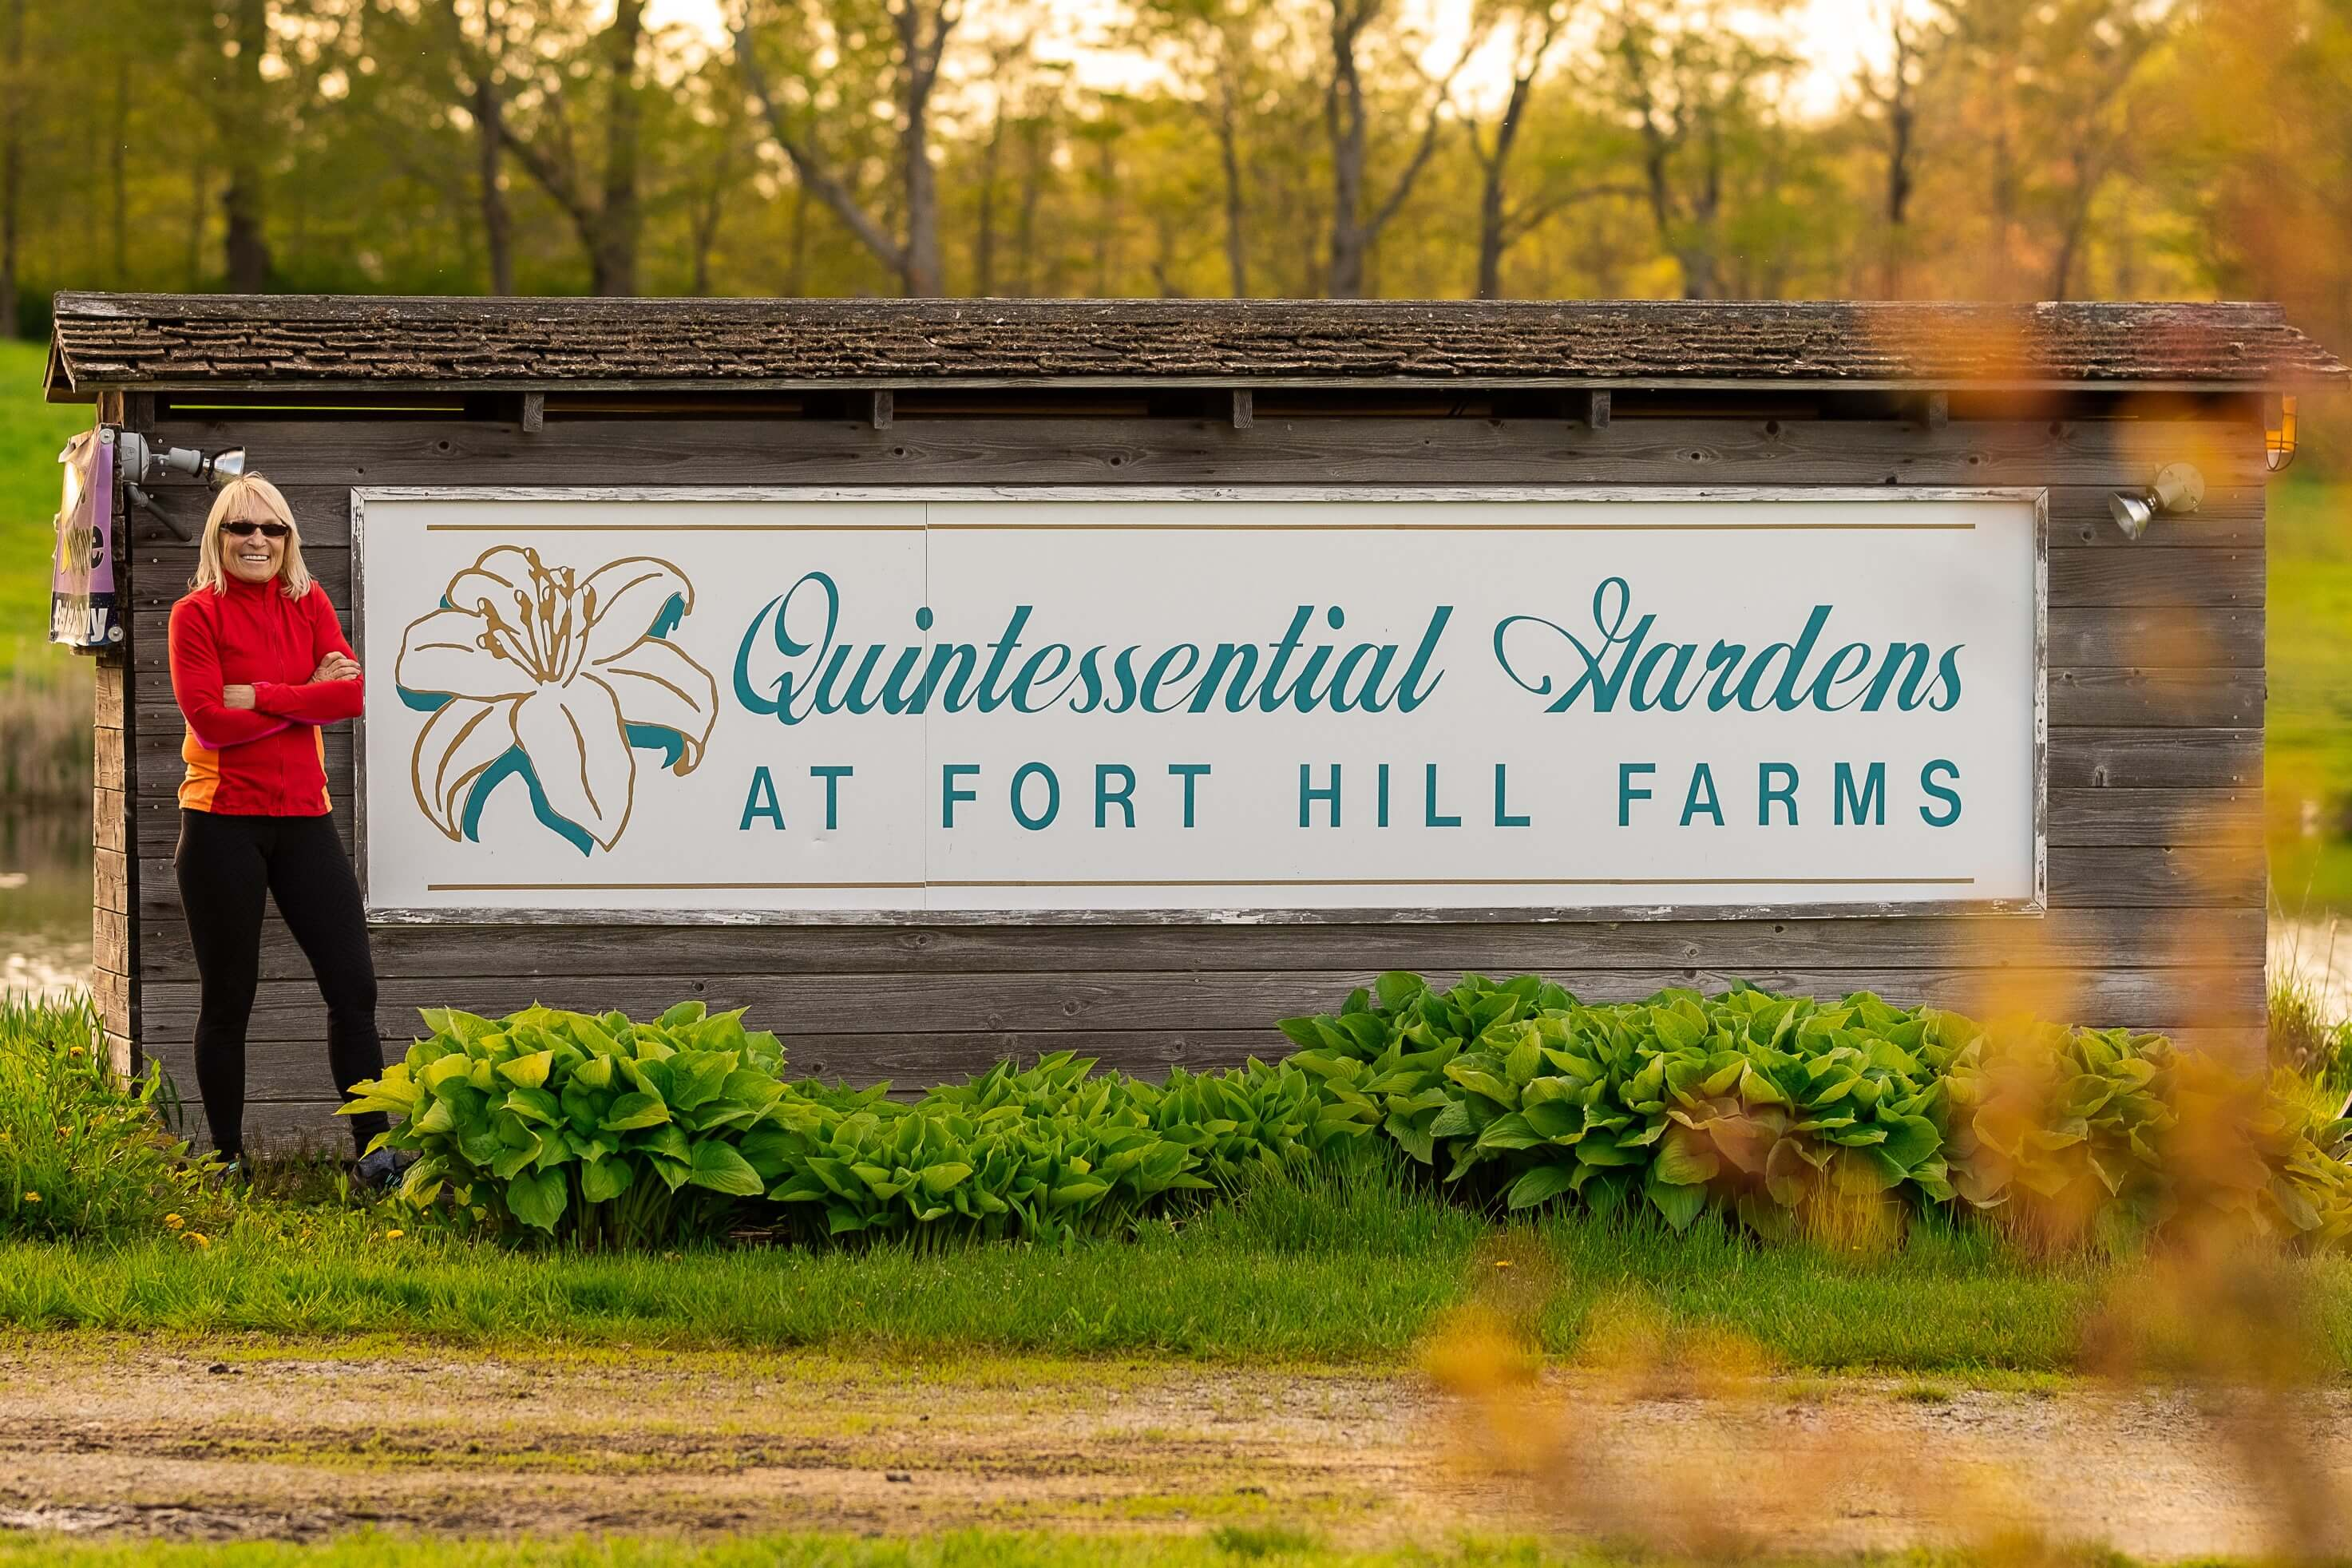 Kristin Orr by the Quintessential Gardens at Fort Hill Farms sign